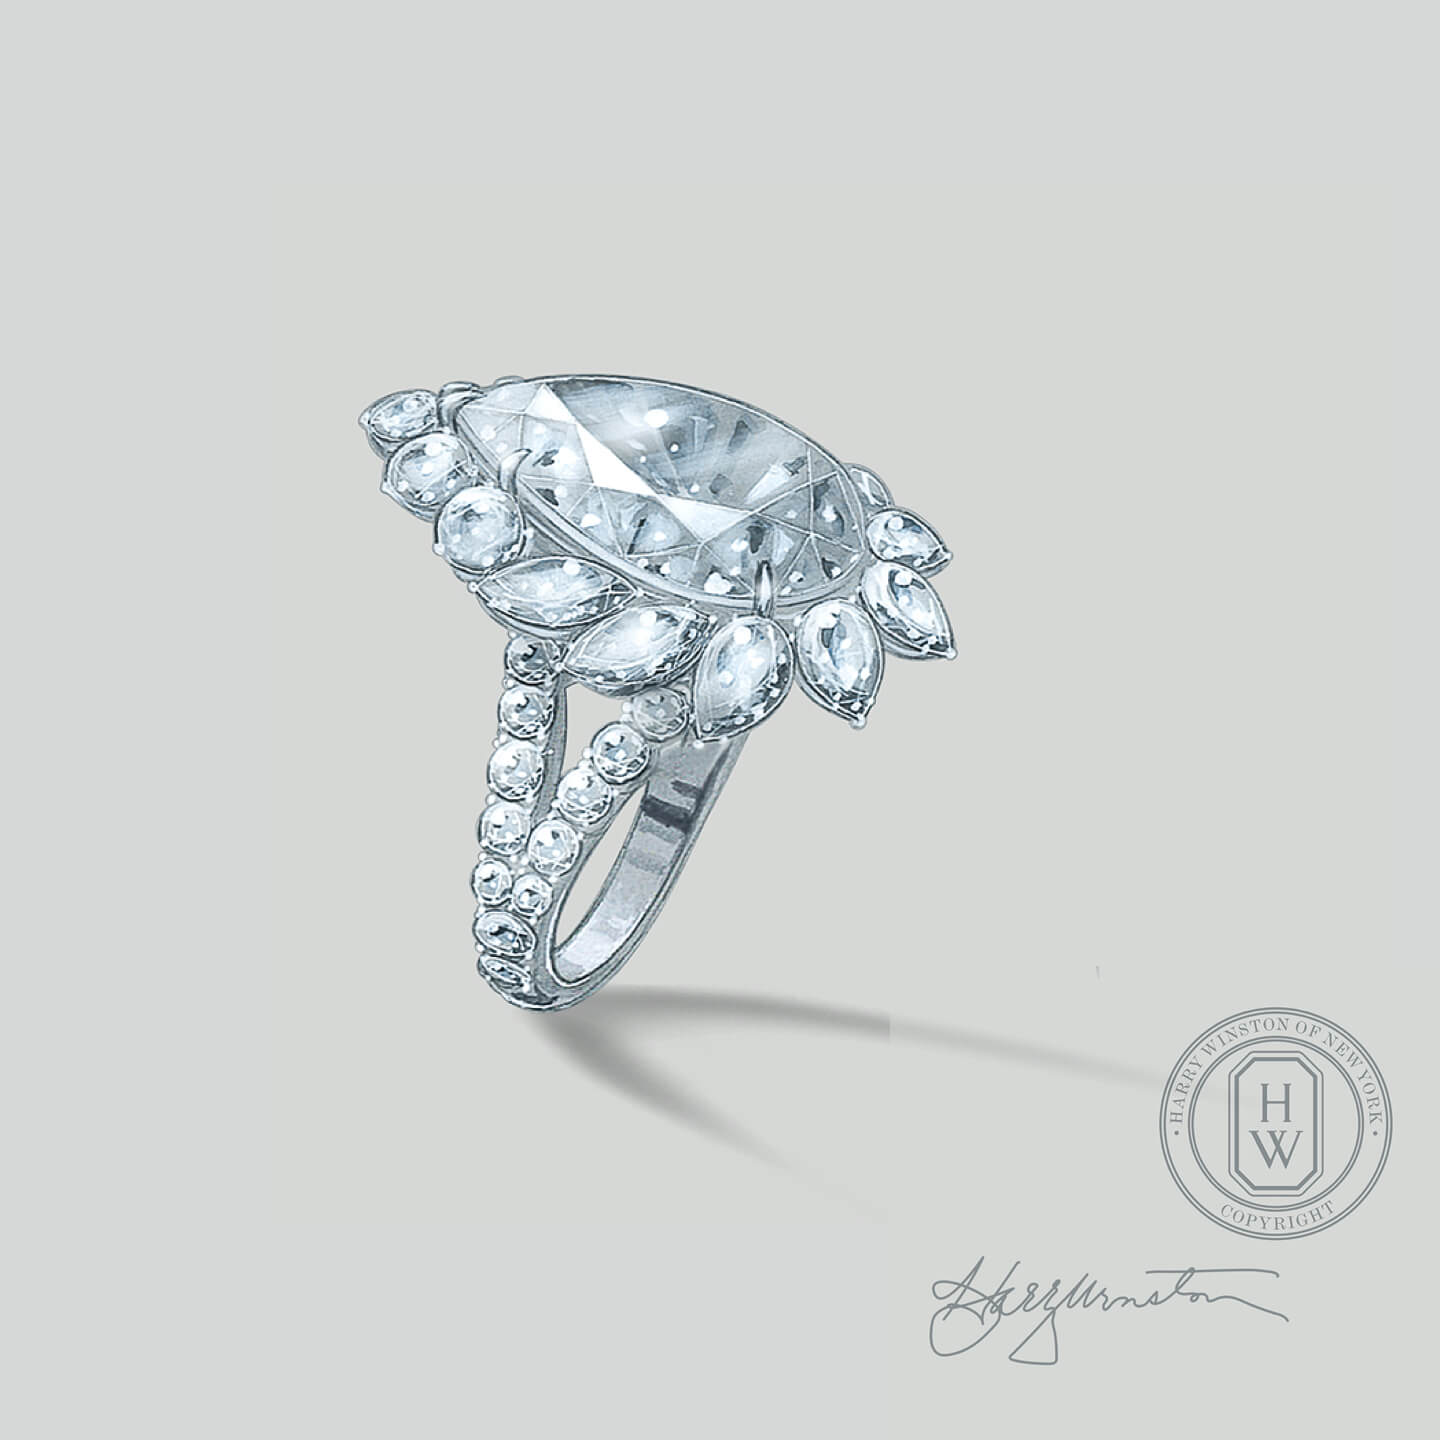 Sketch of a pear-shaped diamond ring from the Legacy Collection by Harry Winston